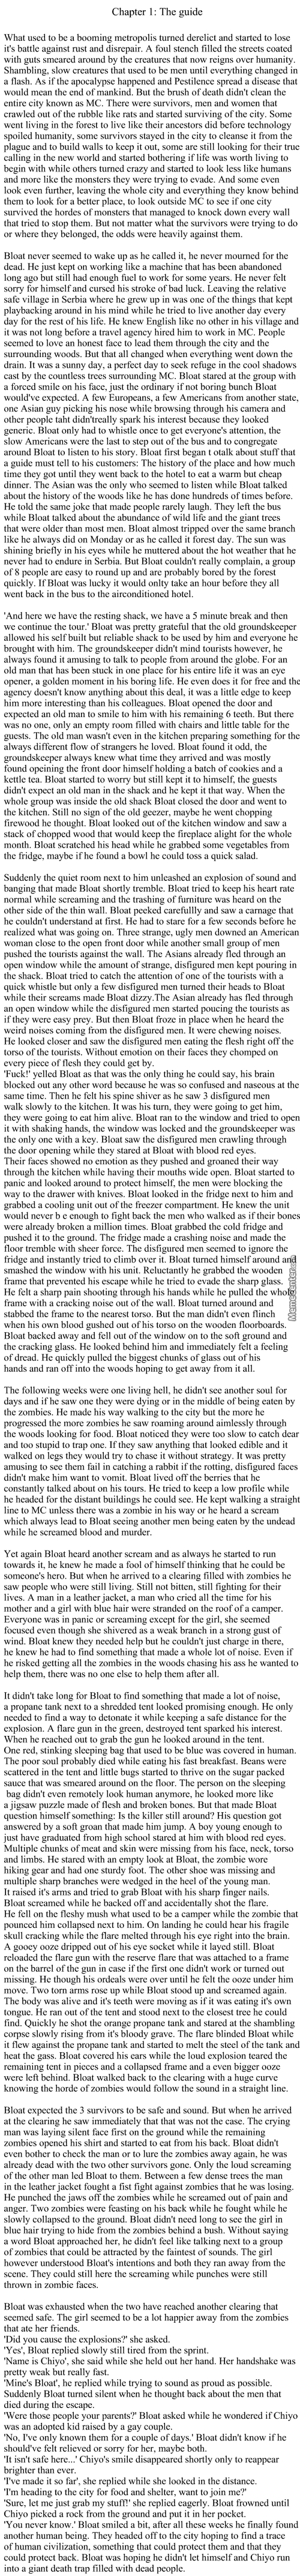 Zombie Survival Chapter 1